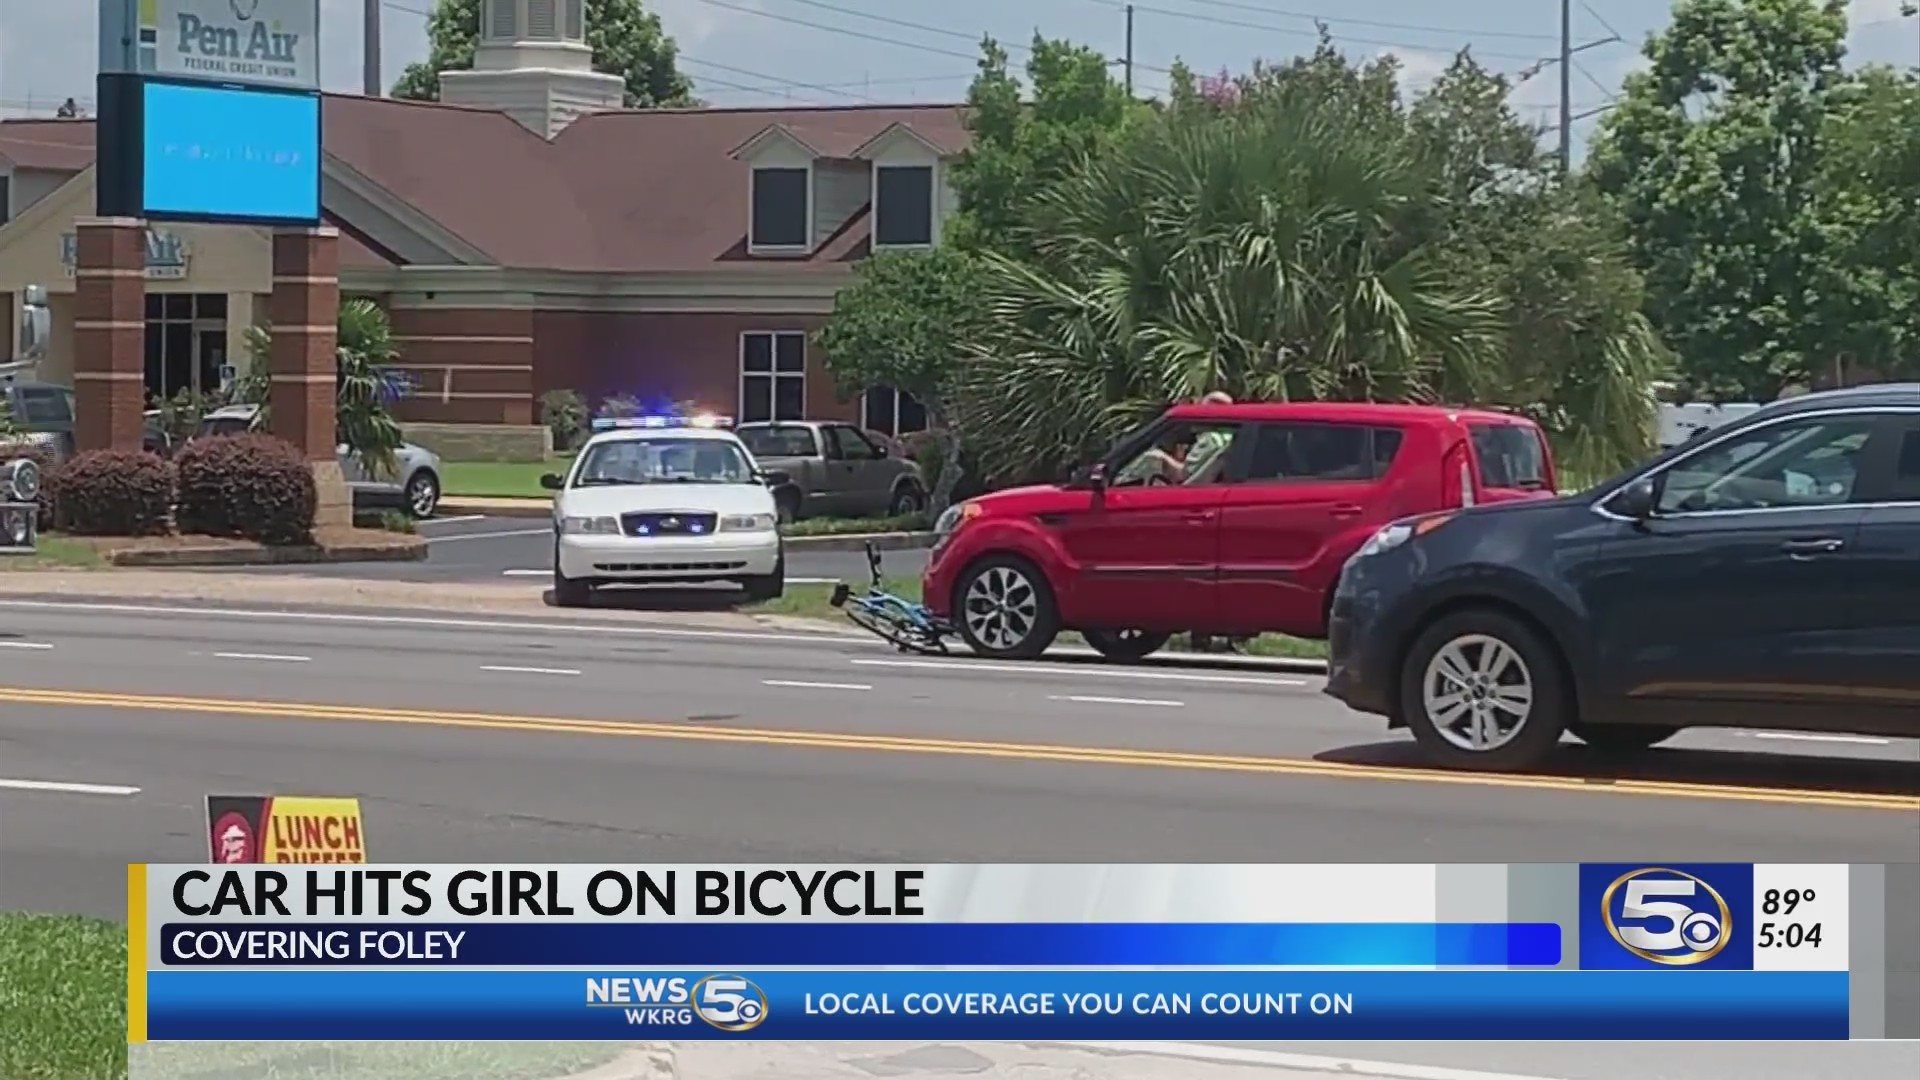 Car strikes girl on bike in Foley